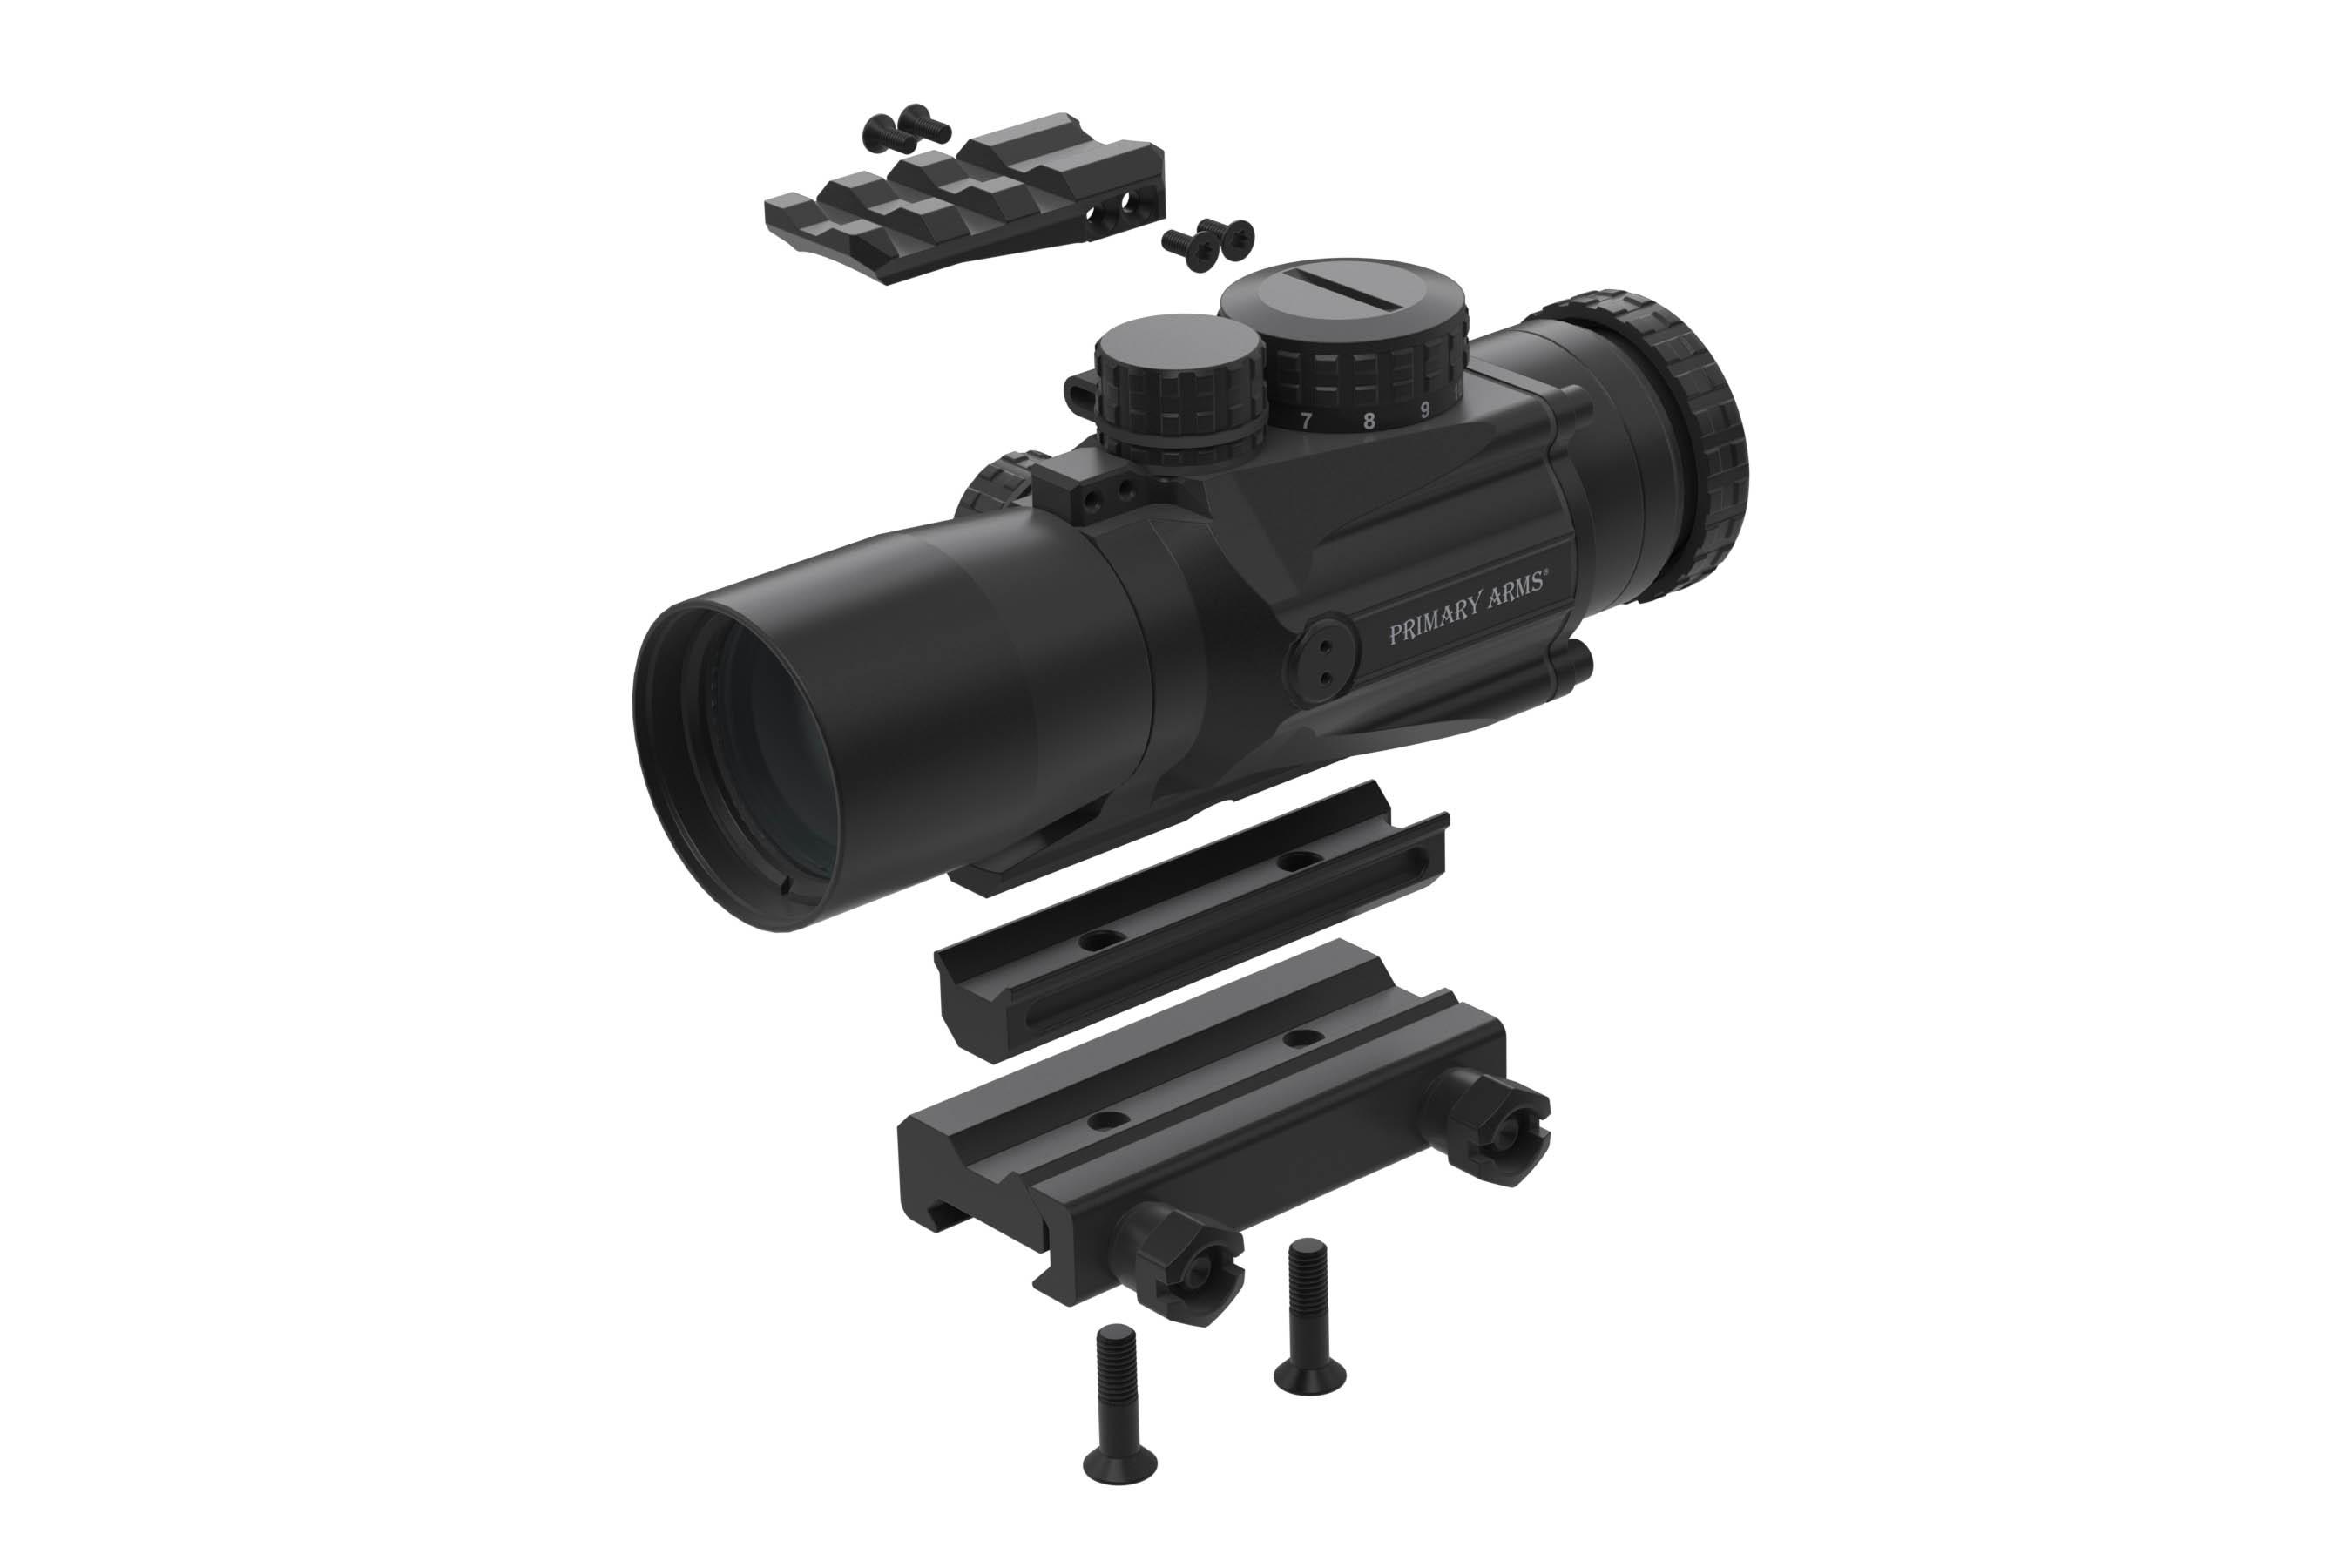 Primary Arms Silver Series Compact 3x32 Gen II Prism Scope - ACSS-5.56-CQB-M2